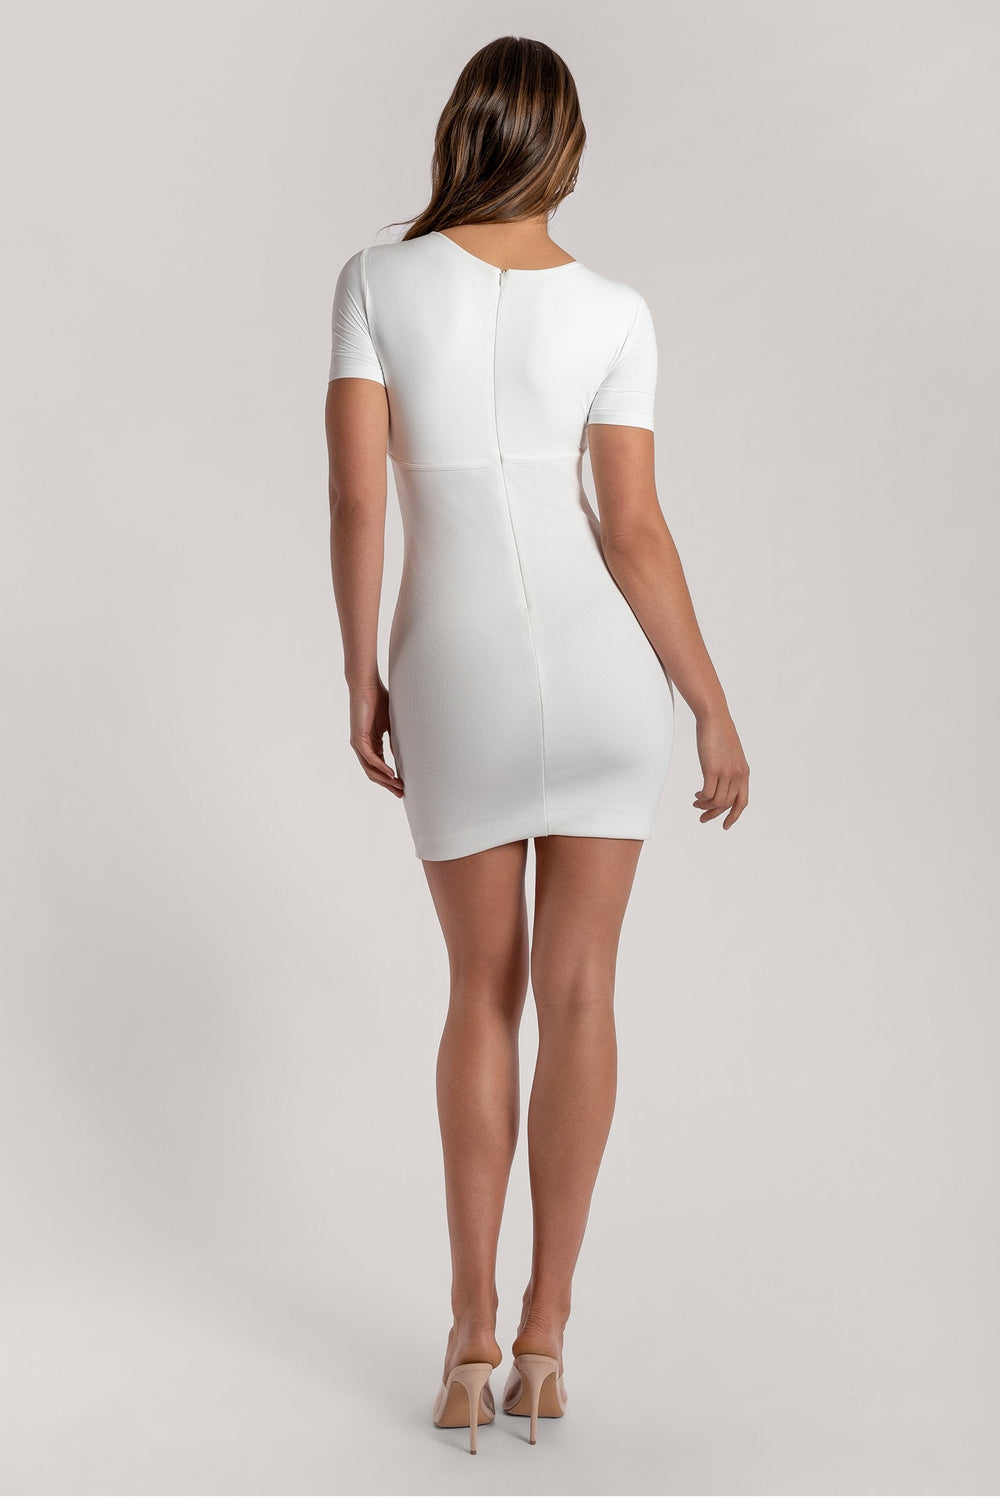 Kenzie Corsetted Waist Short Sleeve Mini Dress - White - MESHKI ?id=16000355401803